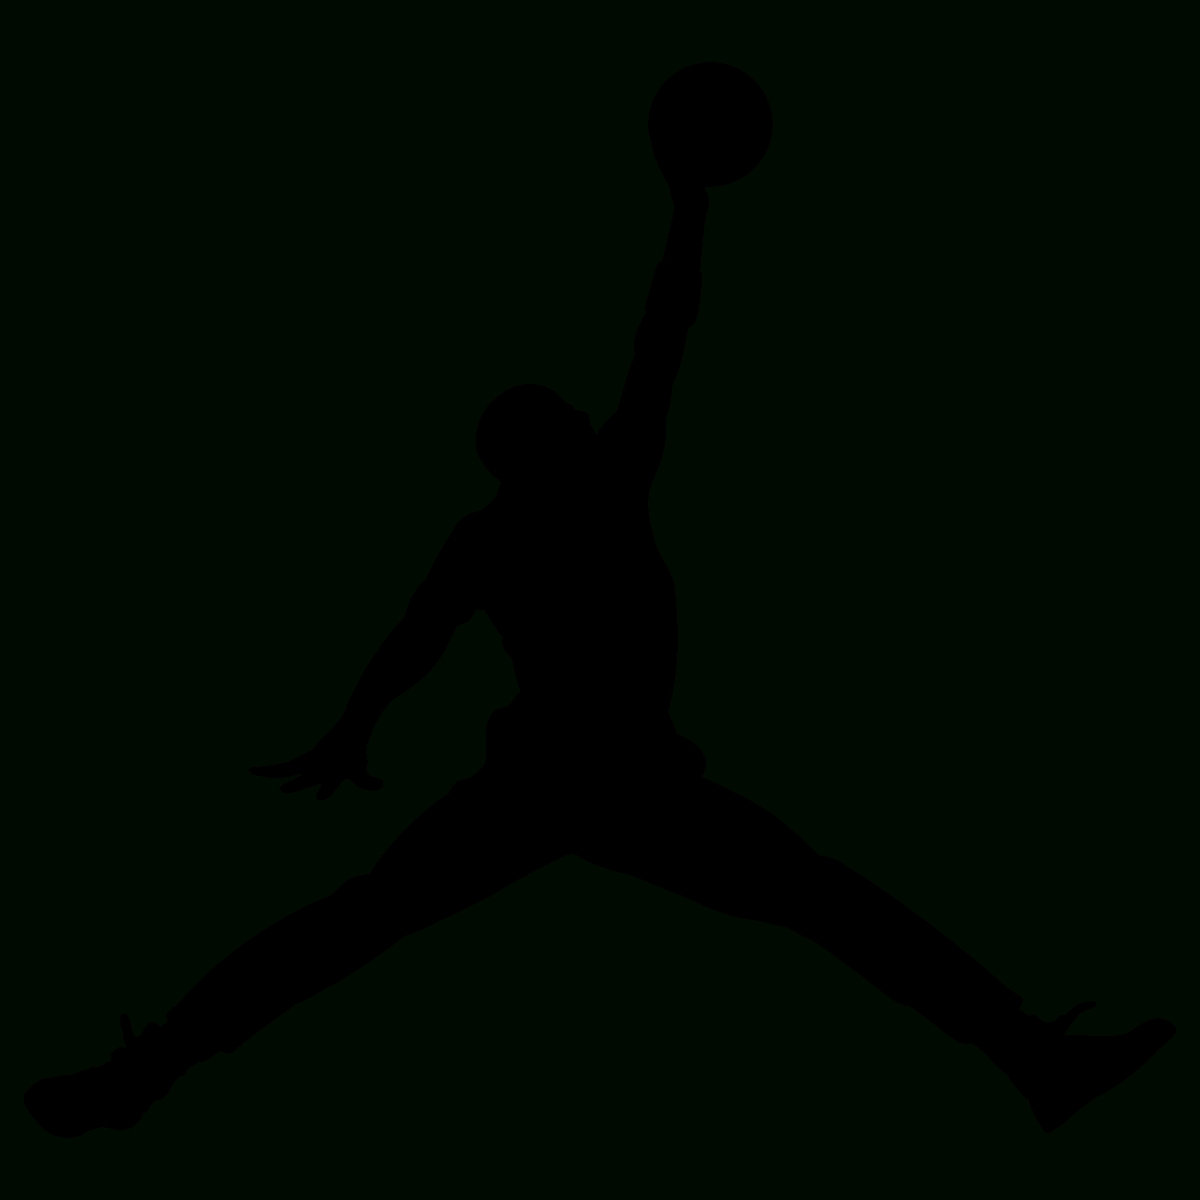 10 New Picture Of Jordan Symbol FULL HD 1920×1080 For PC Background